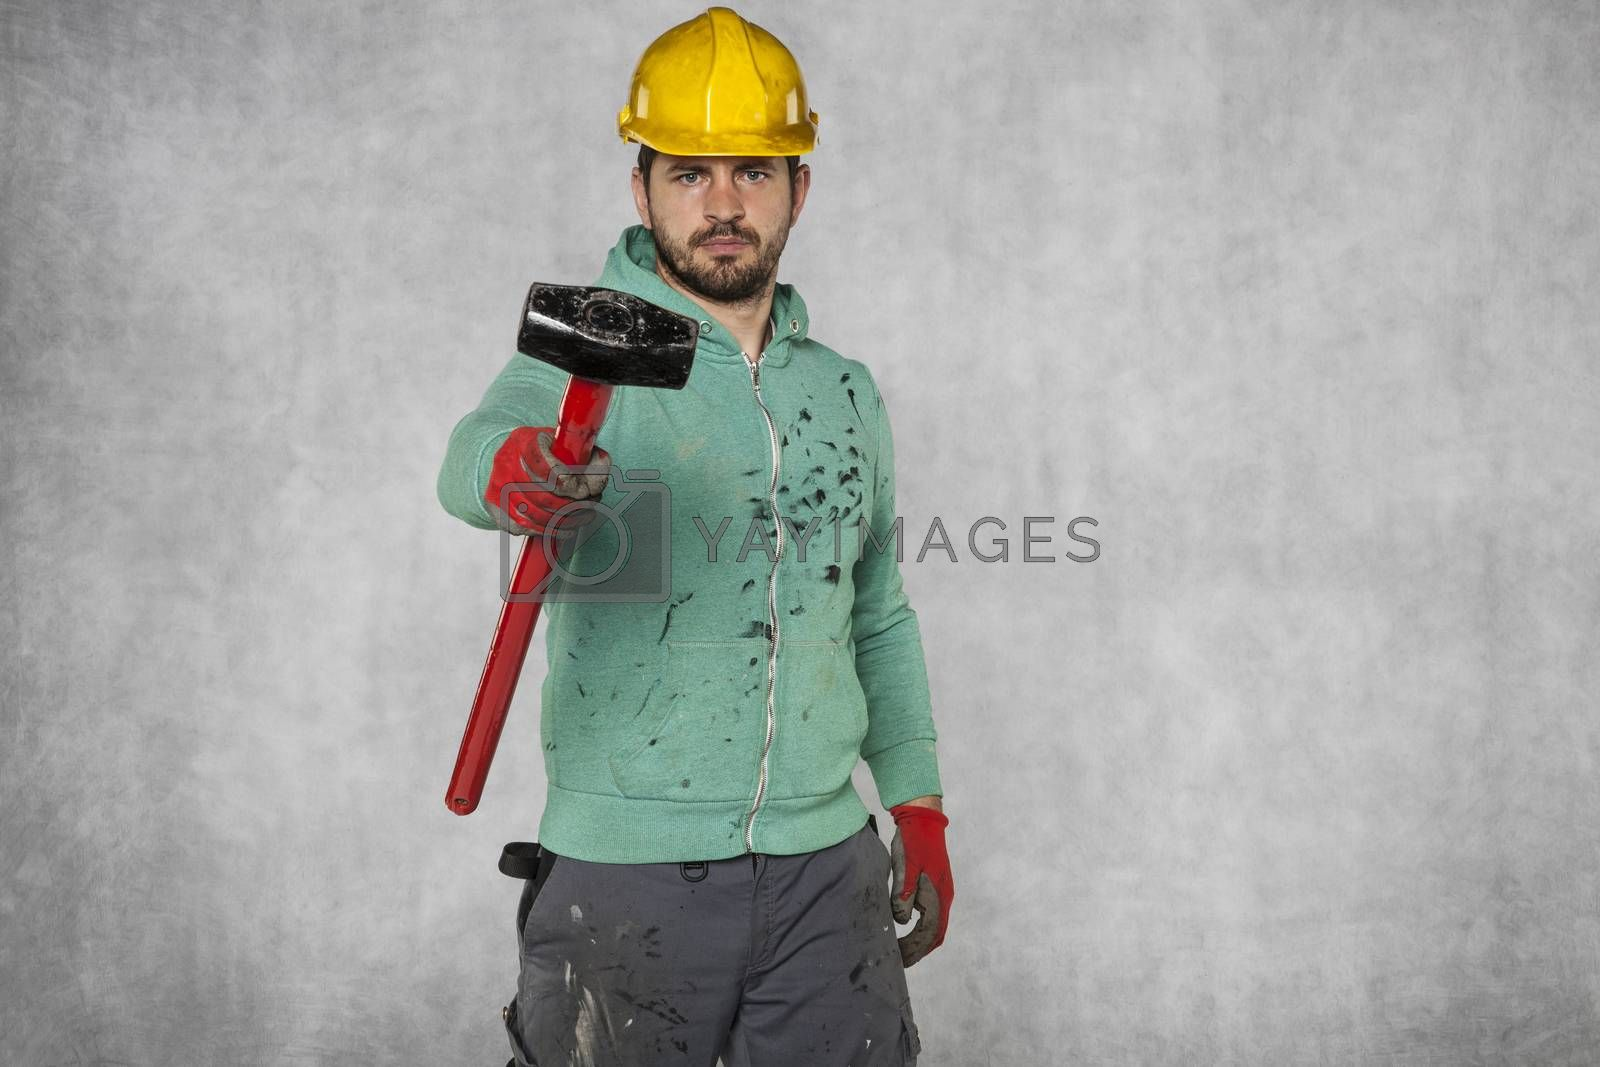 A worker with a big hammer looks at the camera